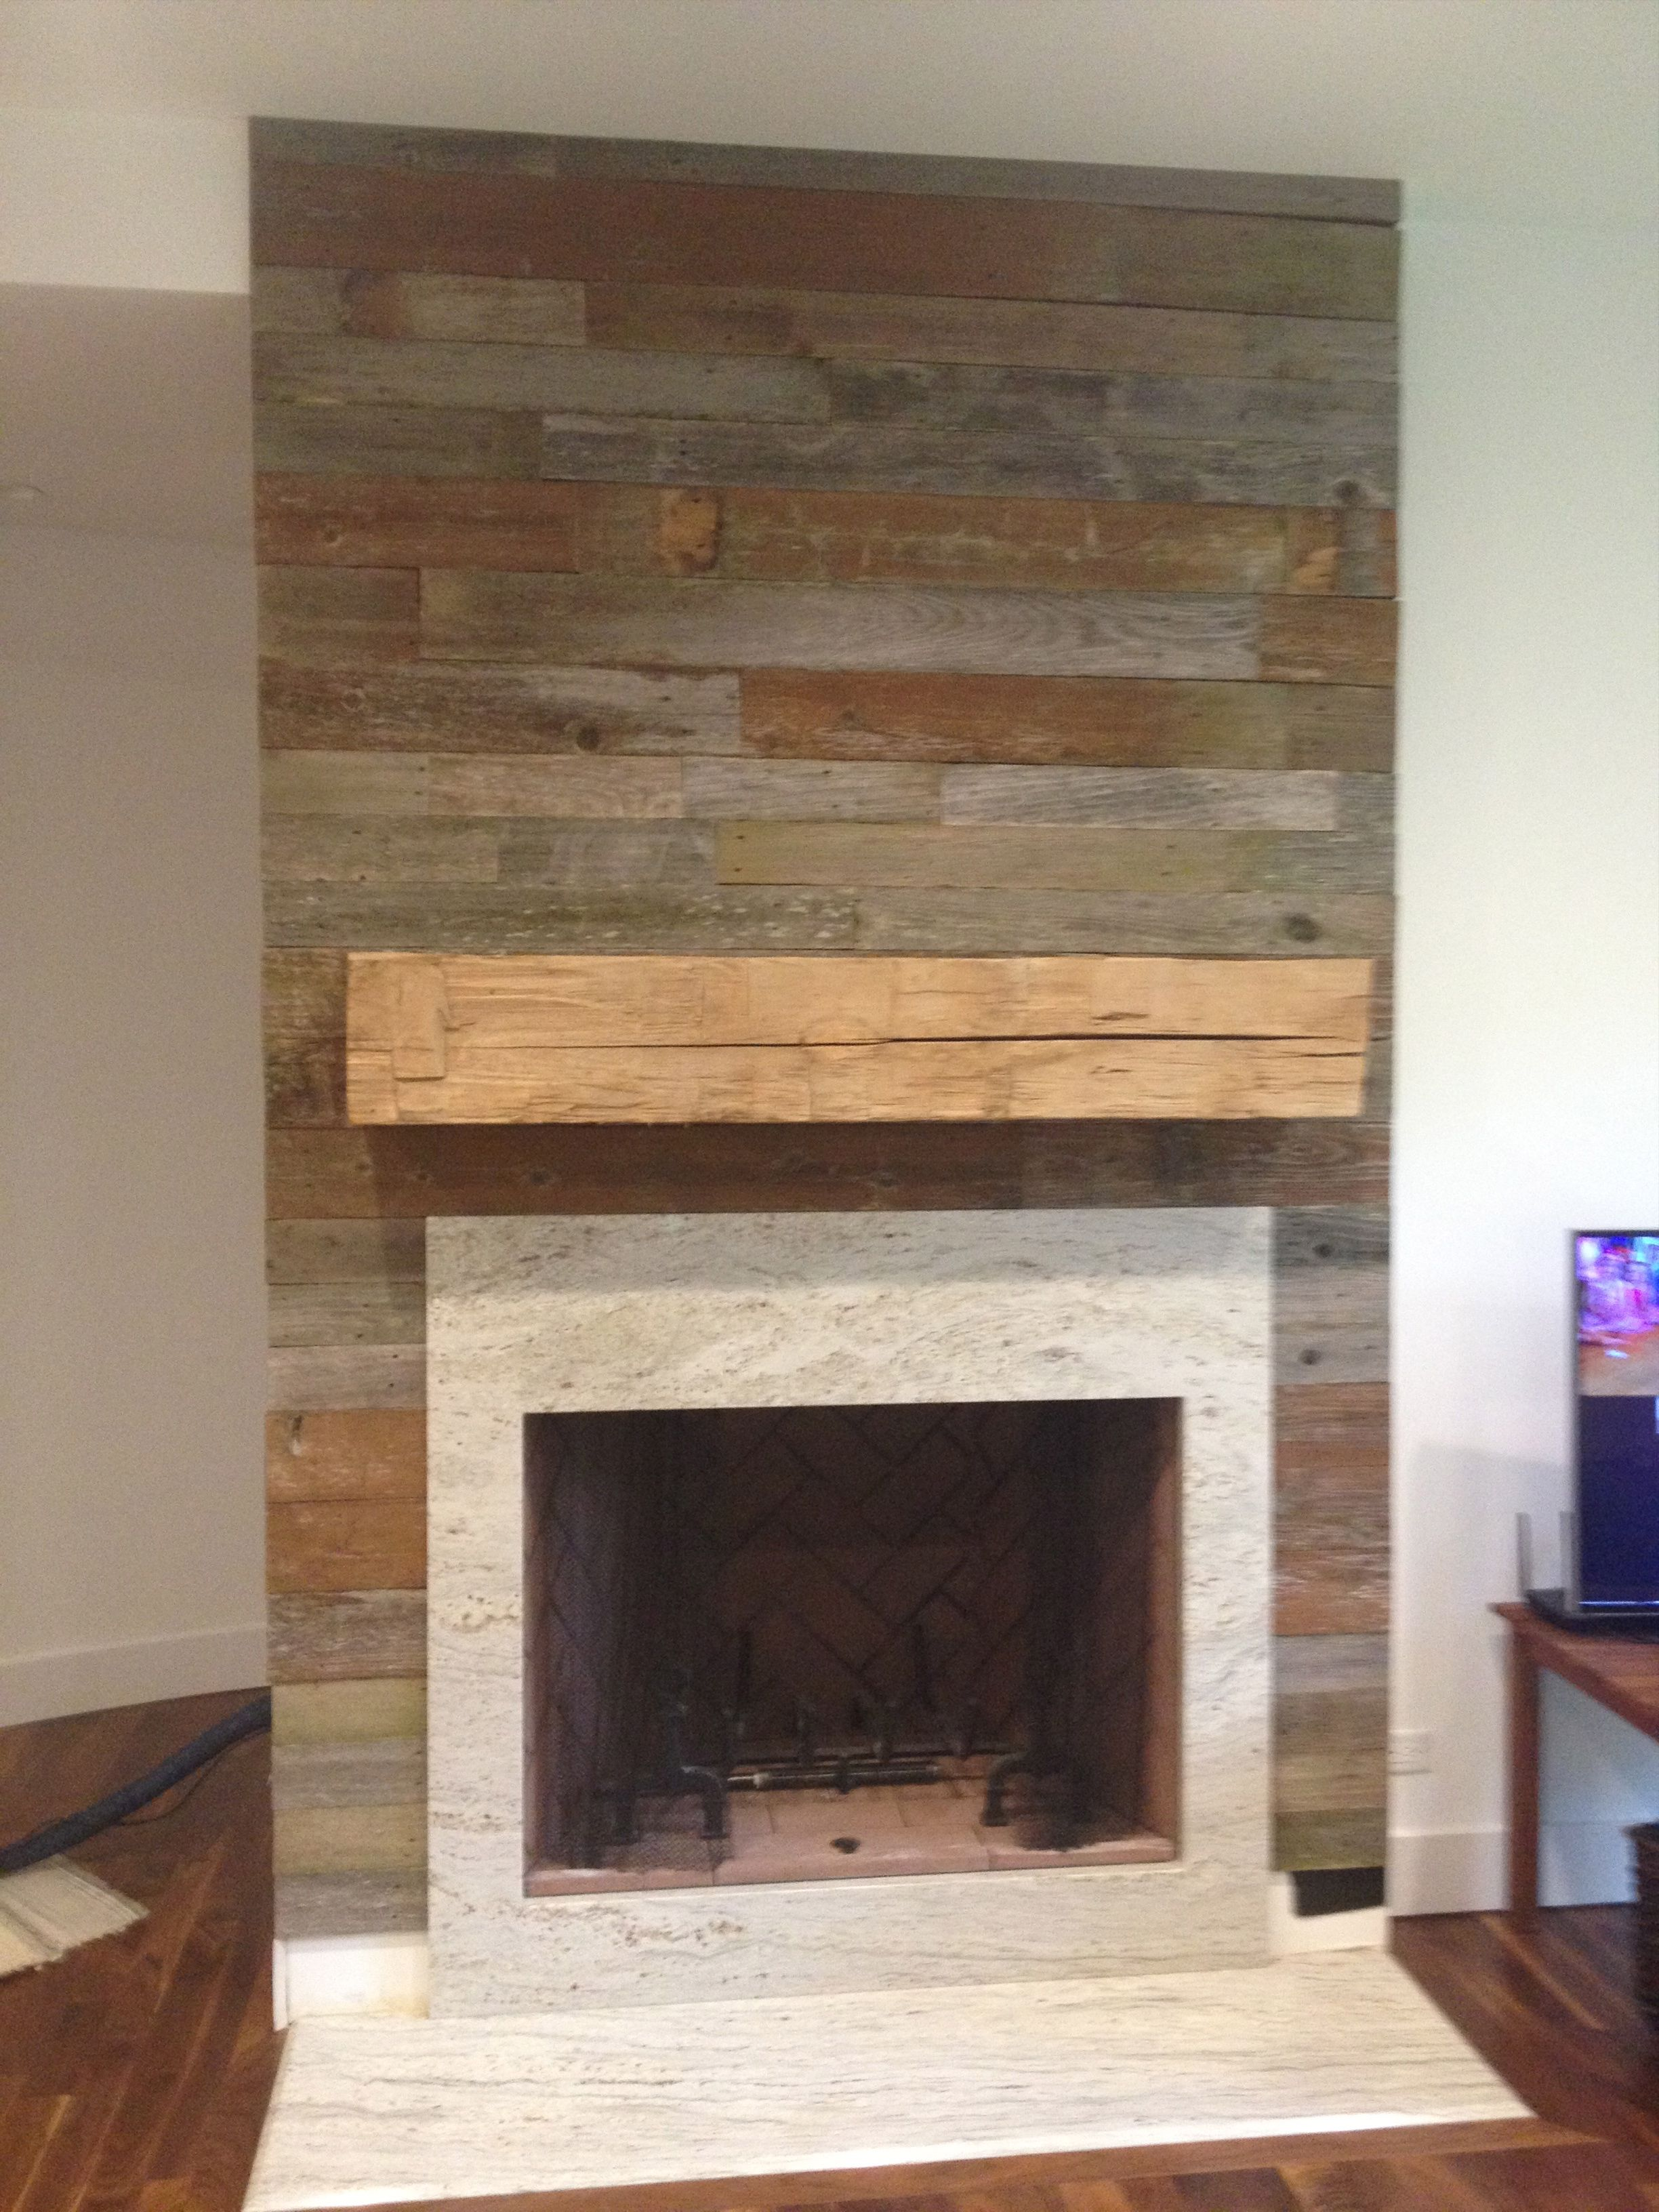 Reclaimed wood fireplace surround and mantel fireplaces for Wood fireplace surround designs